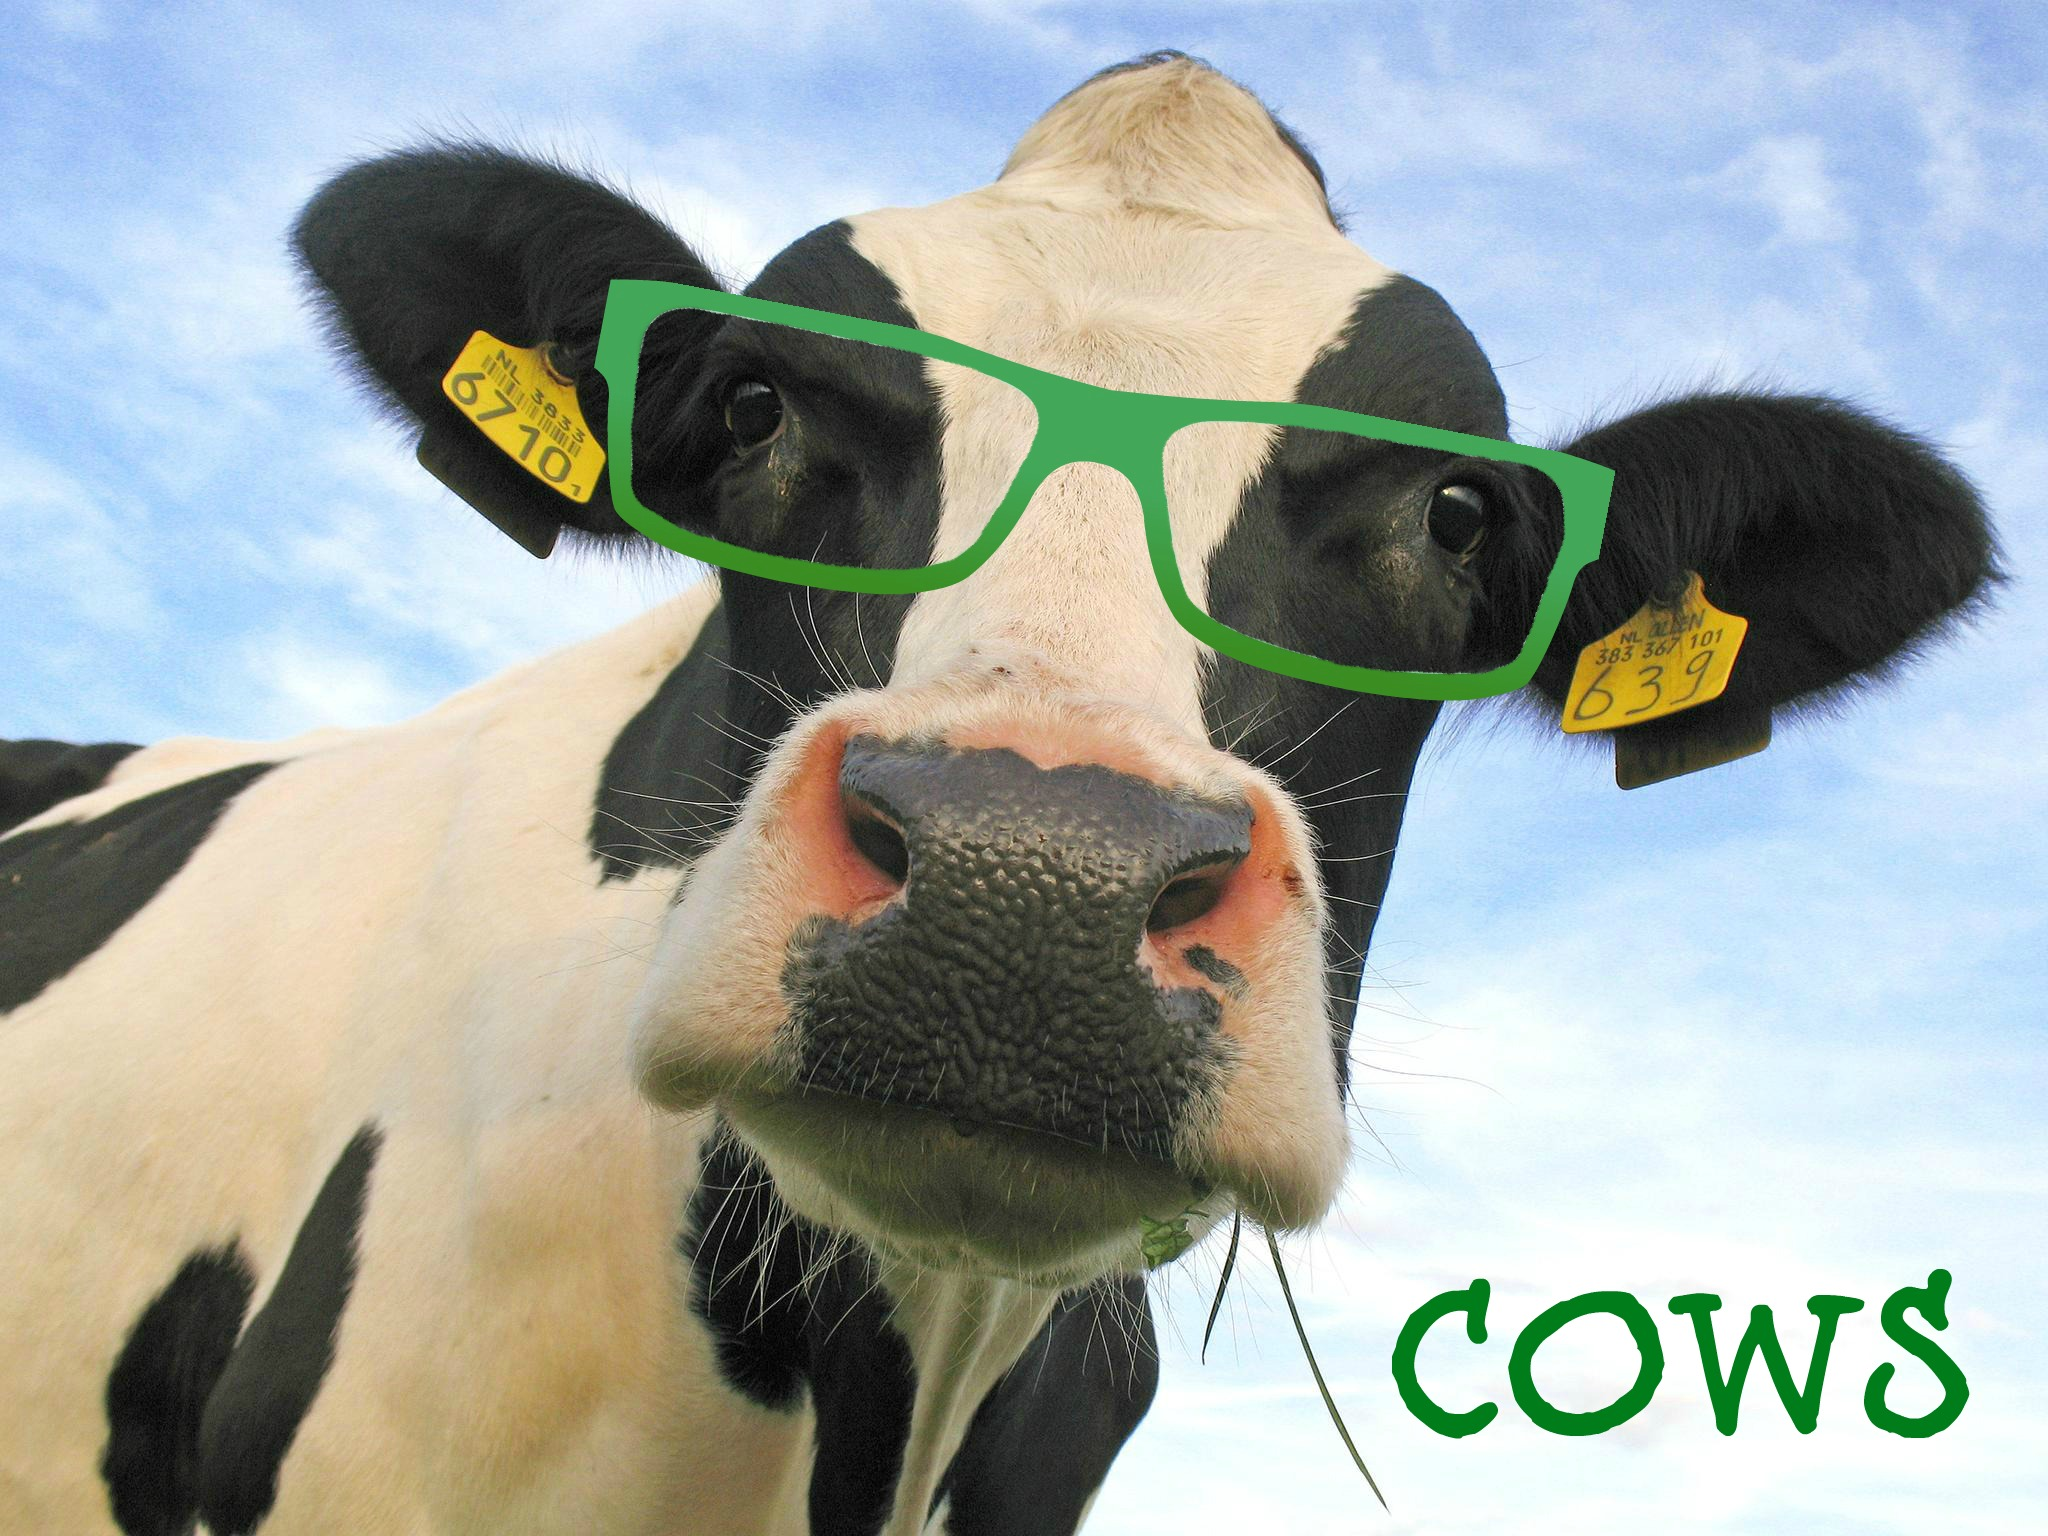 Cow wearing glasses